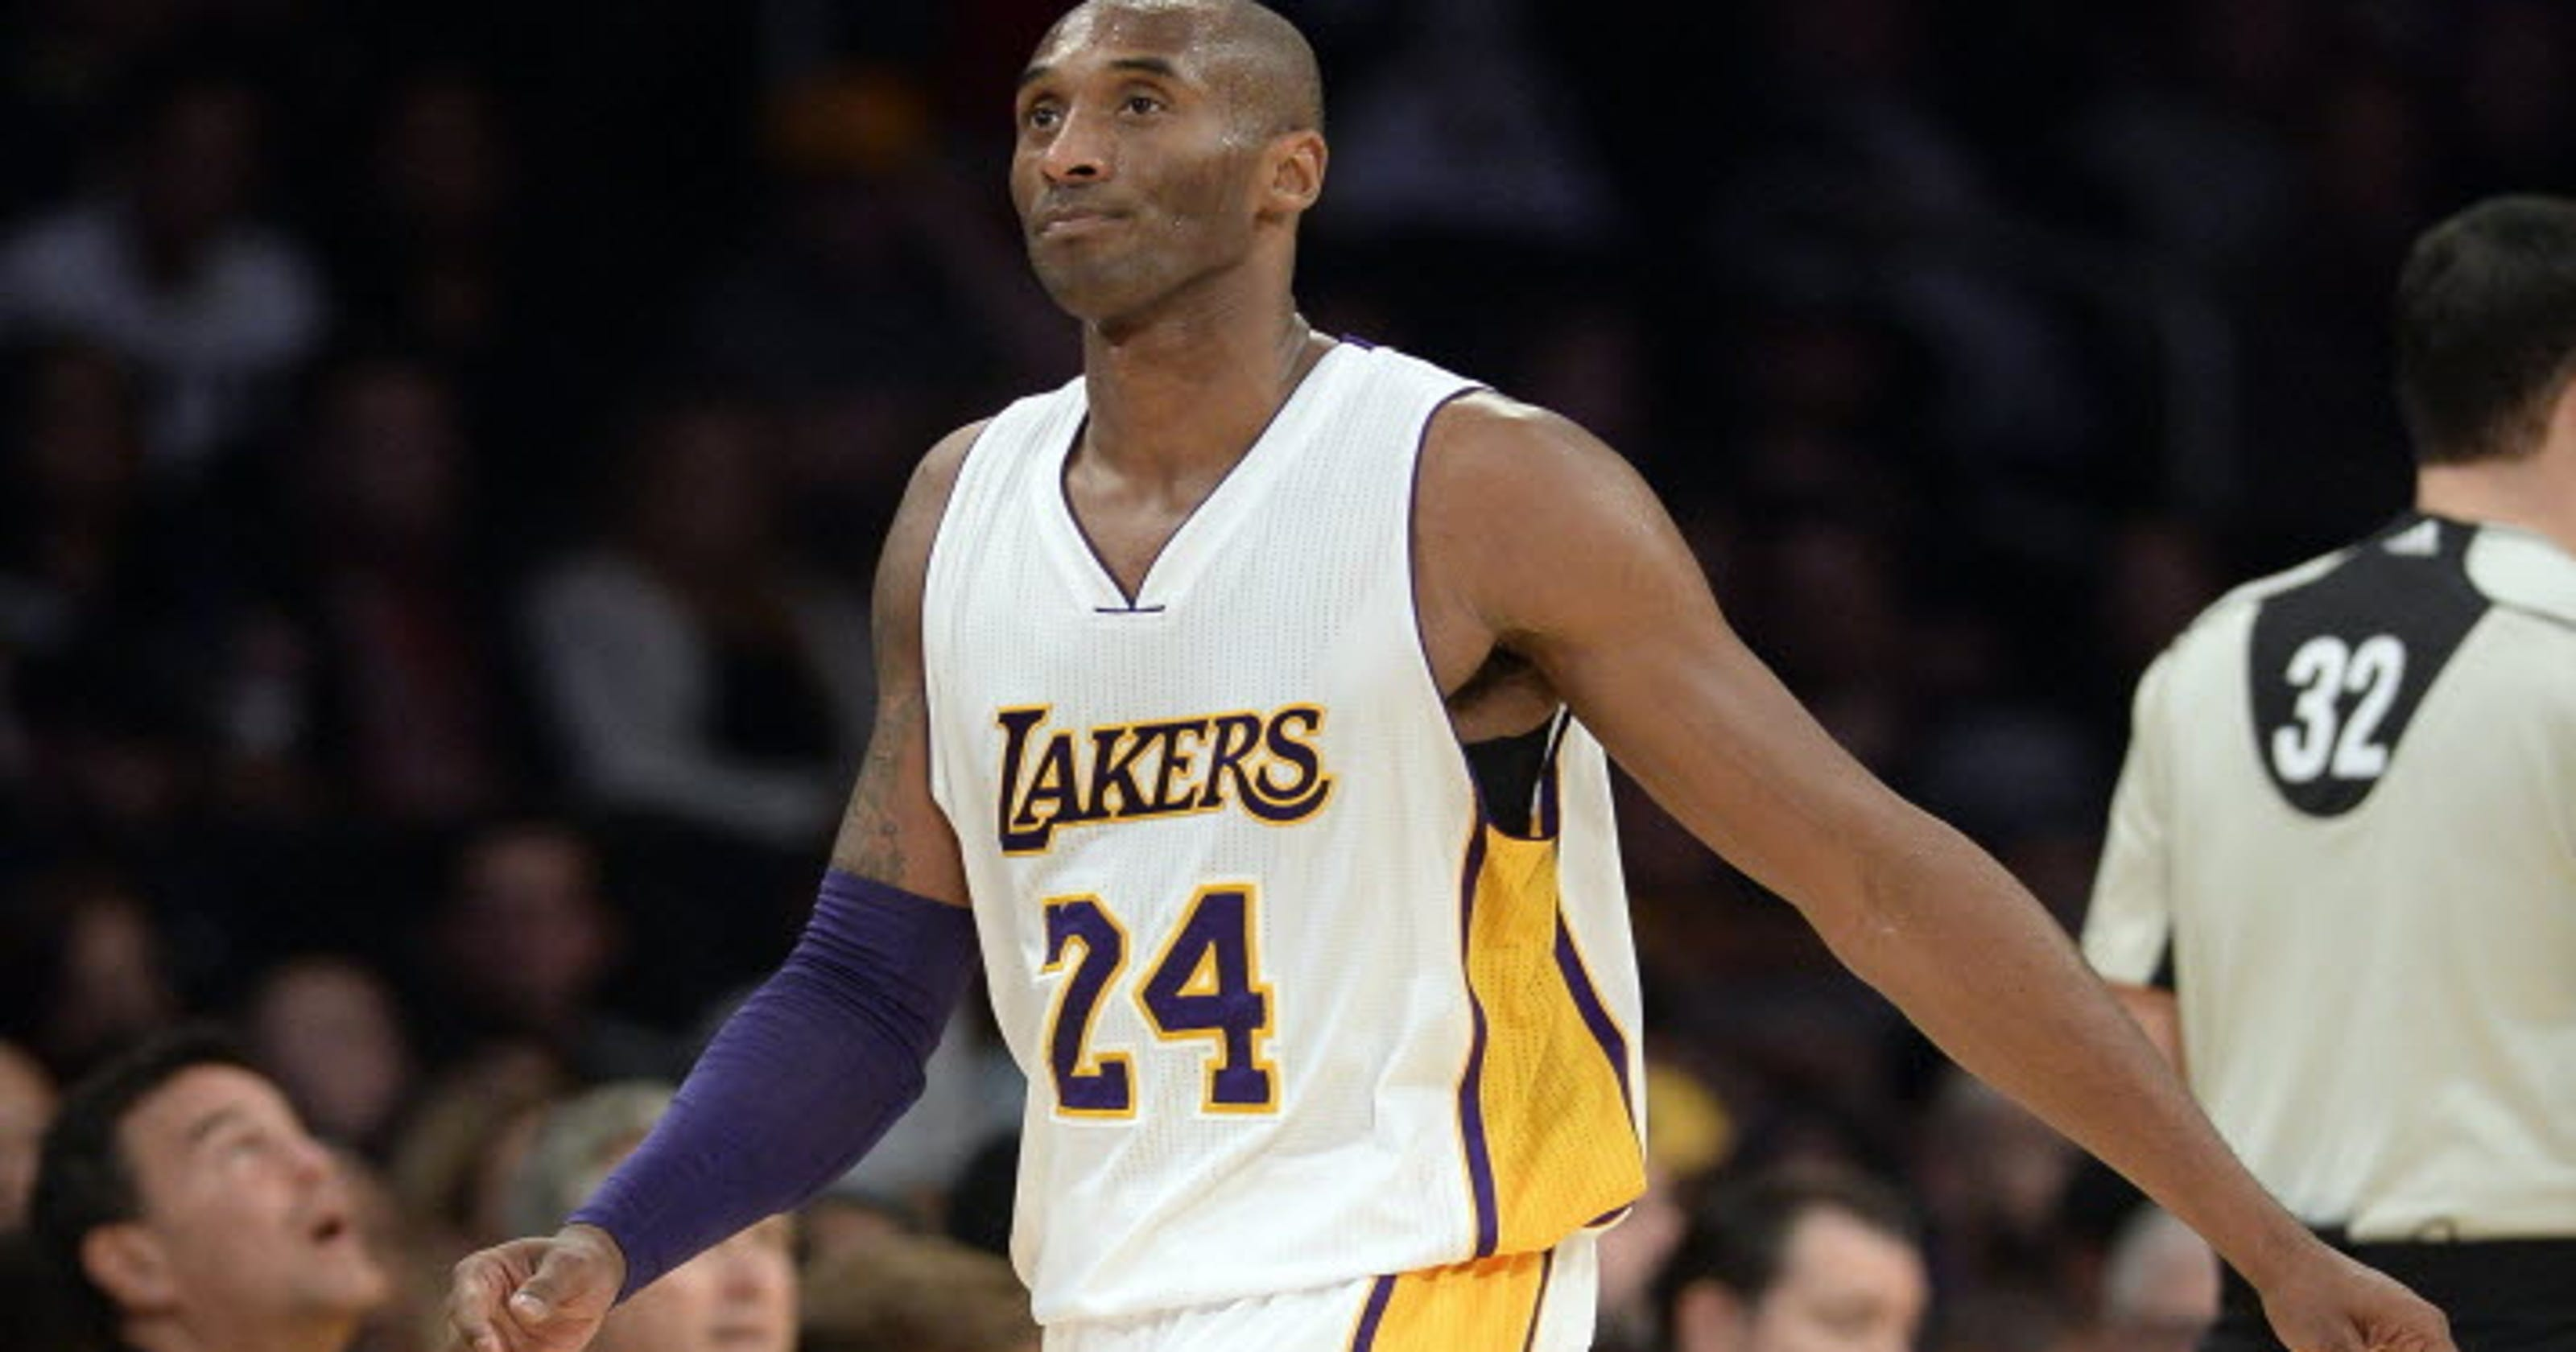 905e25ba3d65 Kobe Bryant retirement announcement causes ticket prices to soar